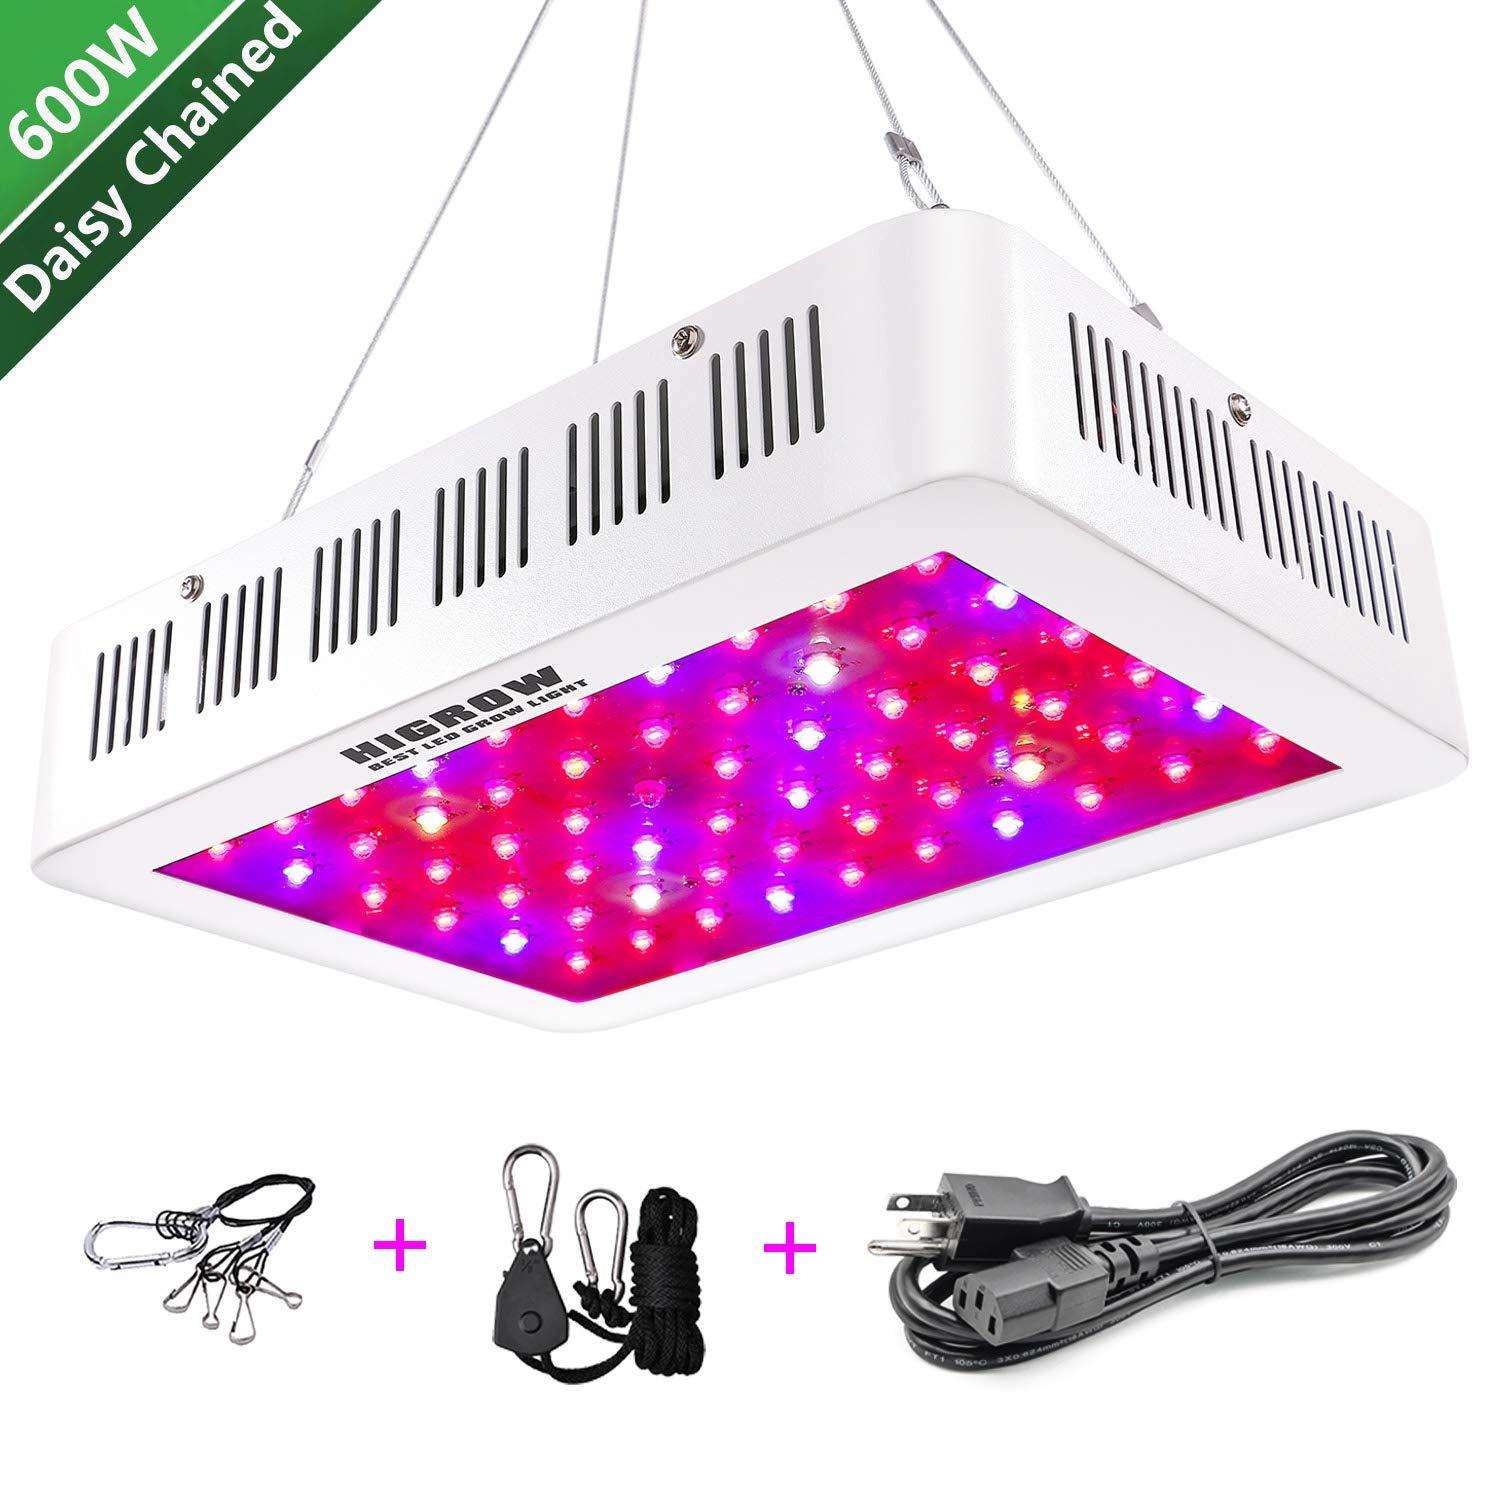 HIGROW 600W LED Grow Light, Full Spectrum Plant Light for Indoor Greenhouse  Hydroponics Plants Veg and Flower (10W LEDs 60Pcs)